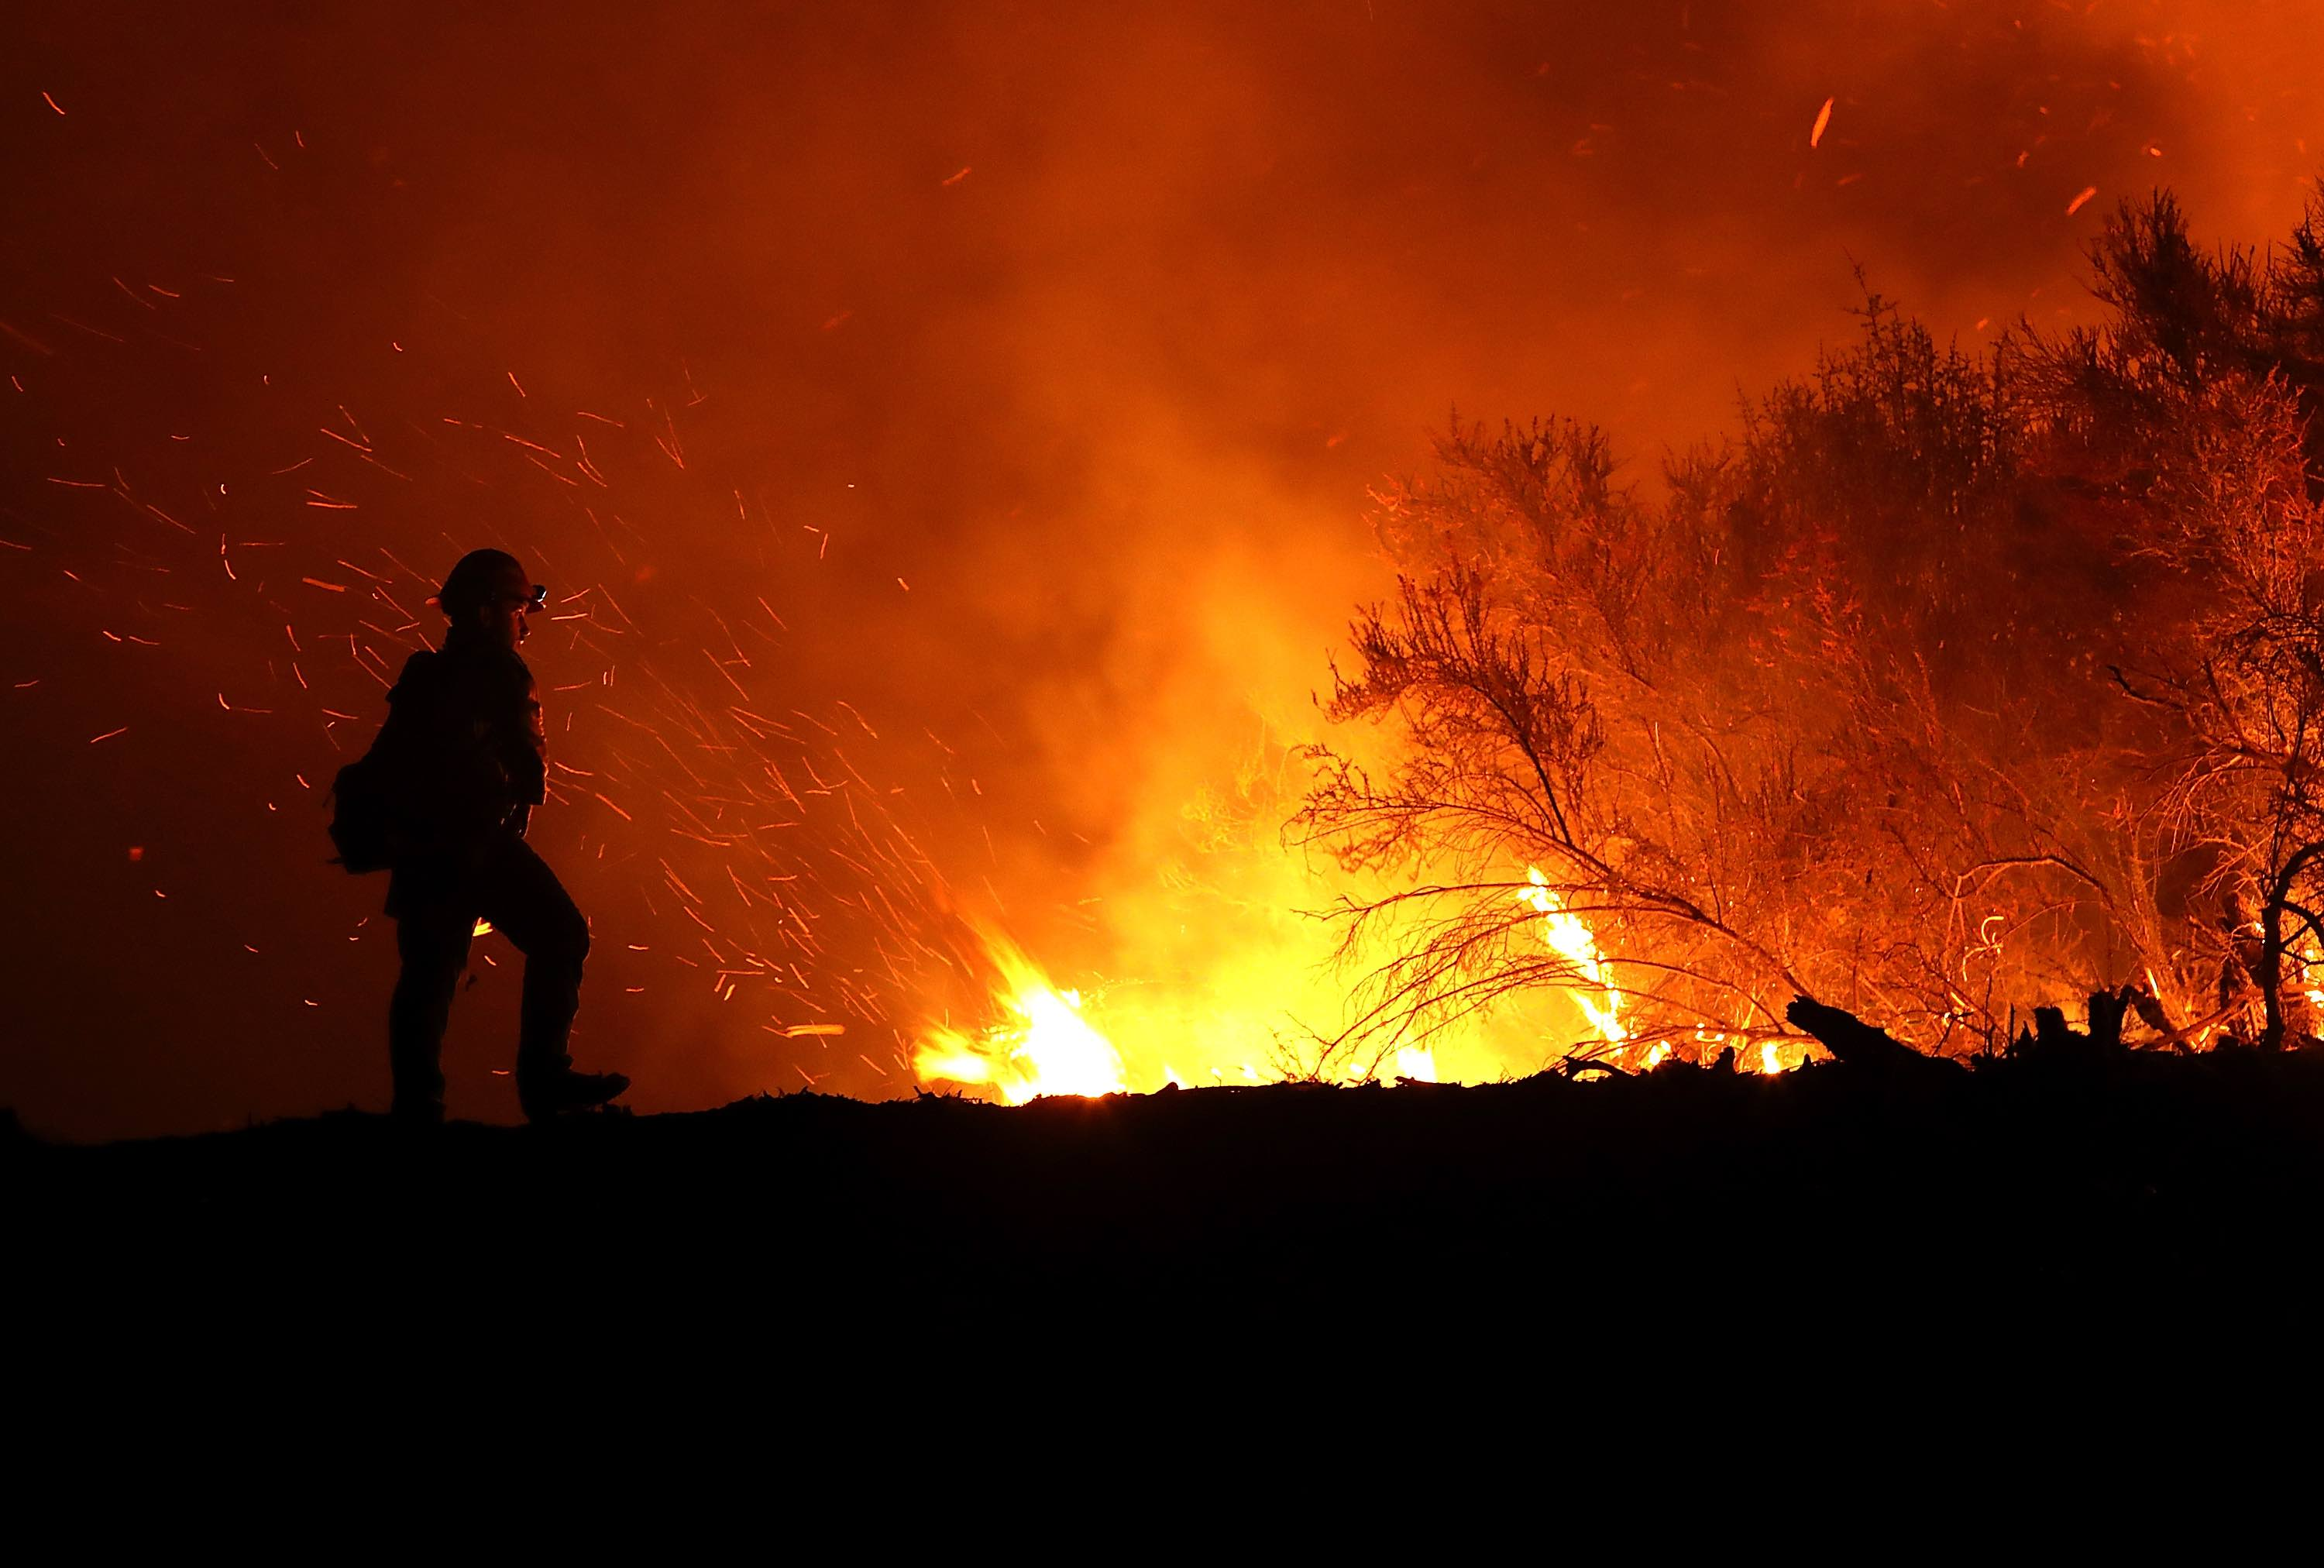 Verizon throttled fire department s    unlimited    data during Calif     Enlarge   A firefighter battling the Medocino Complex fire on August 7   2018 near Lodoga  California